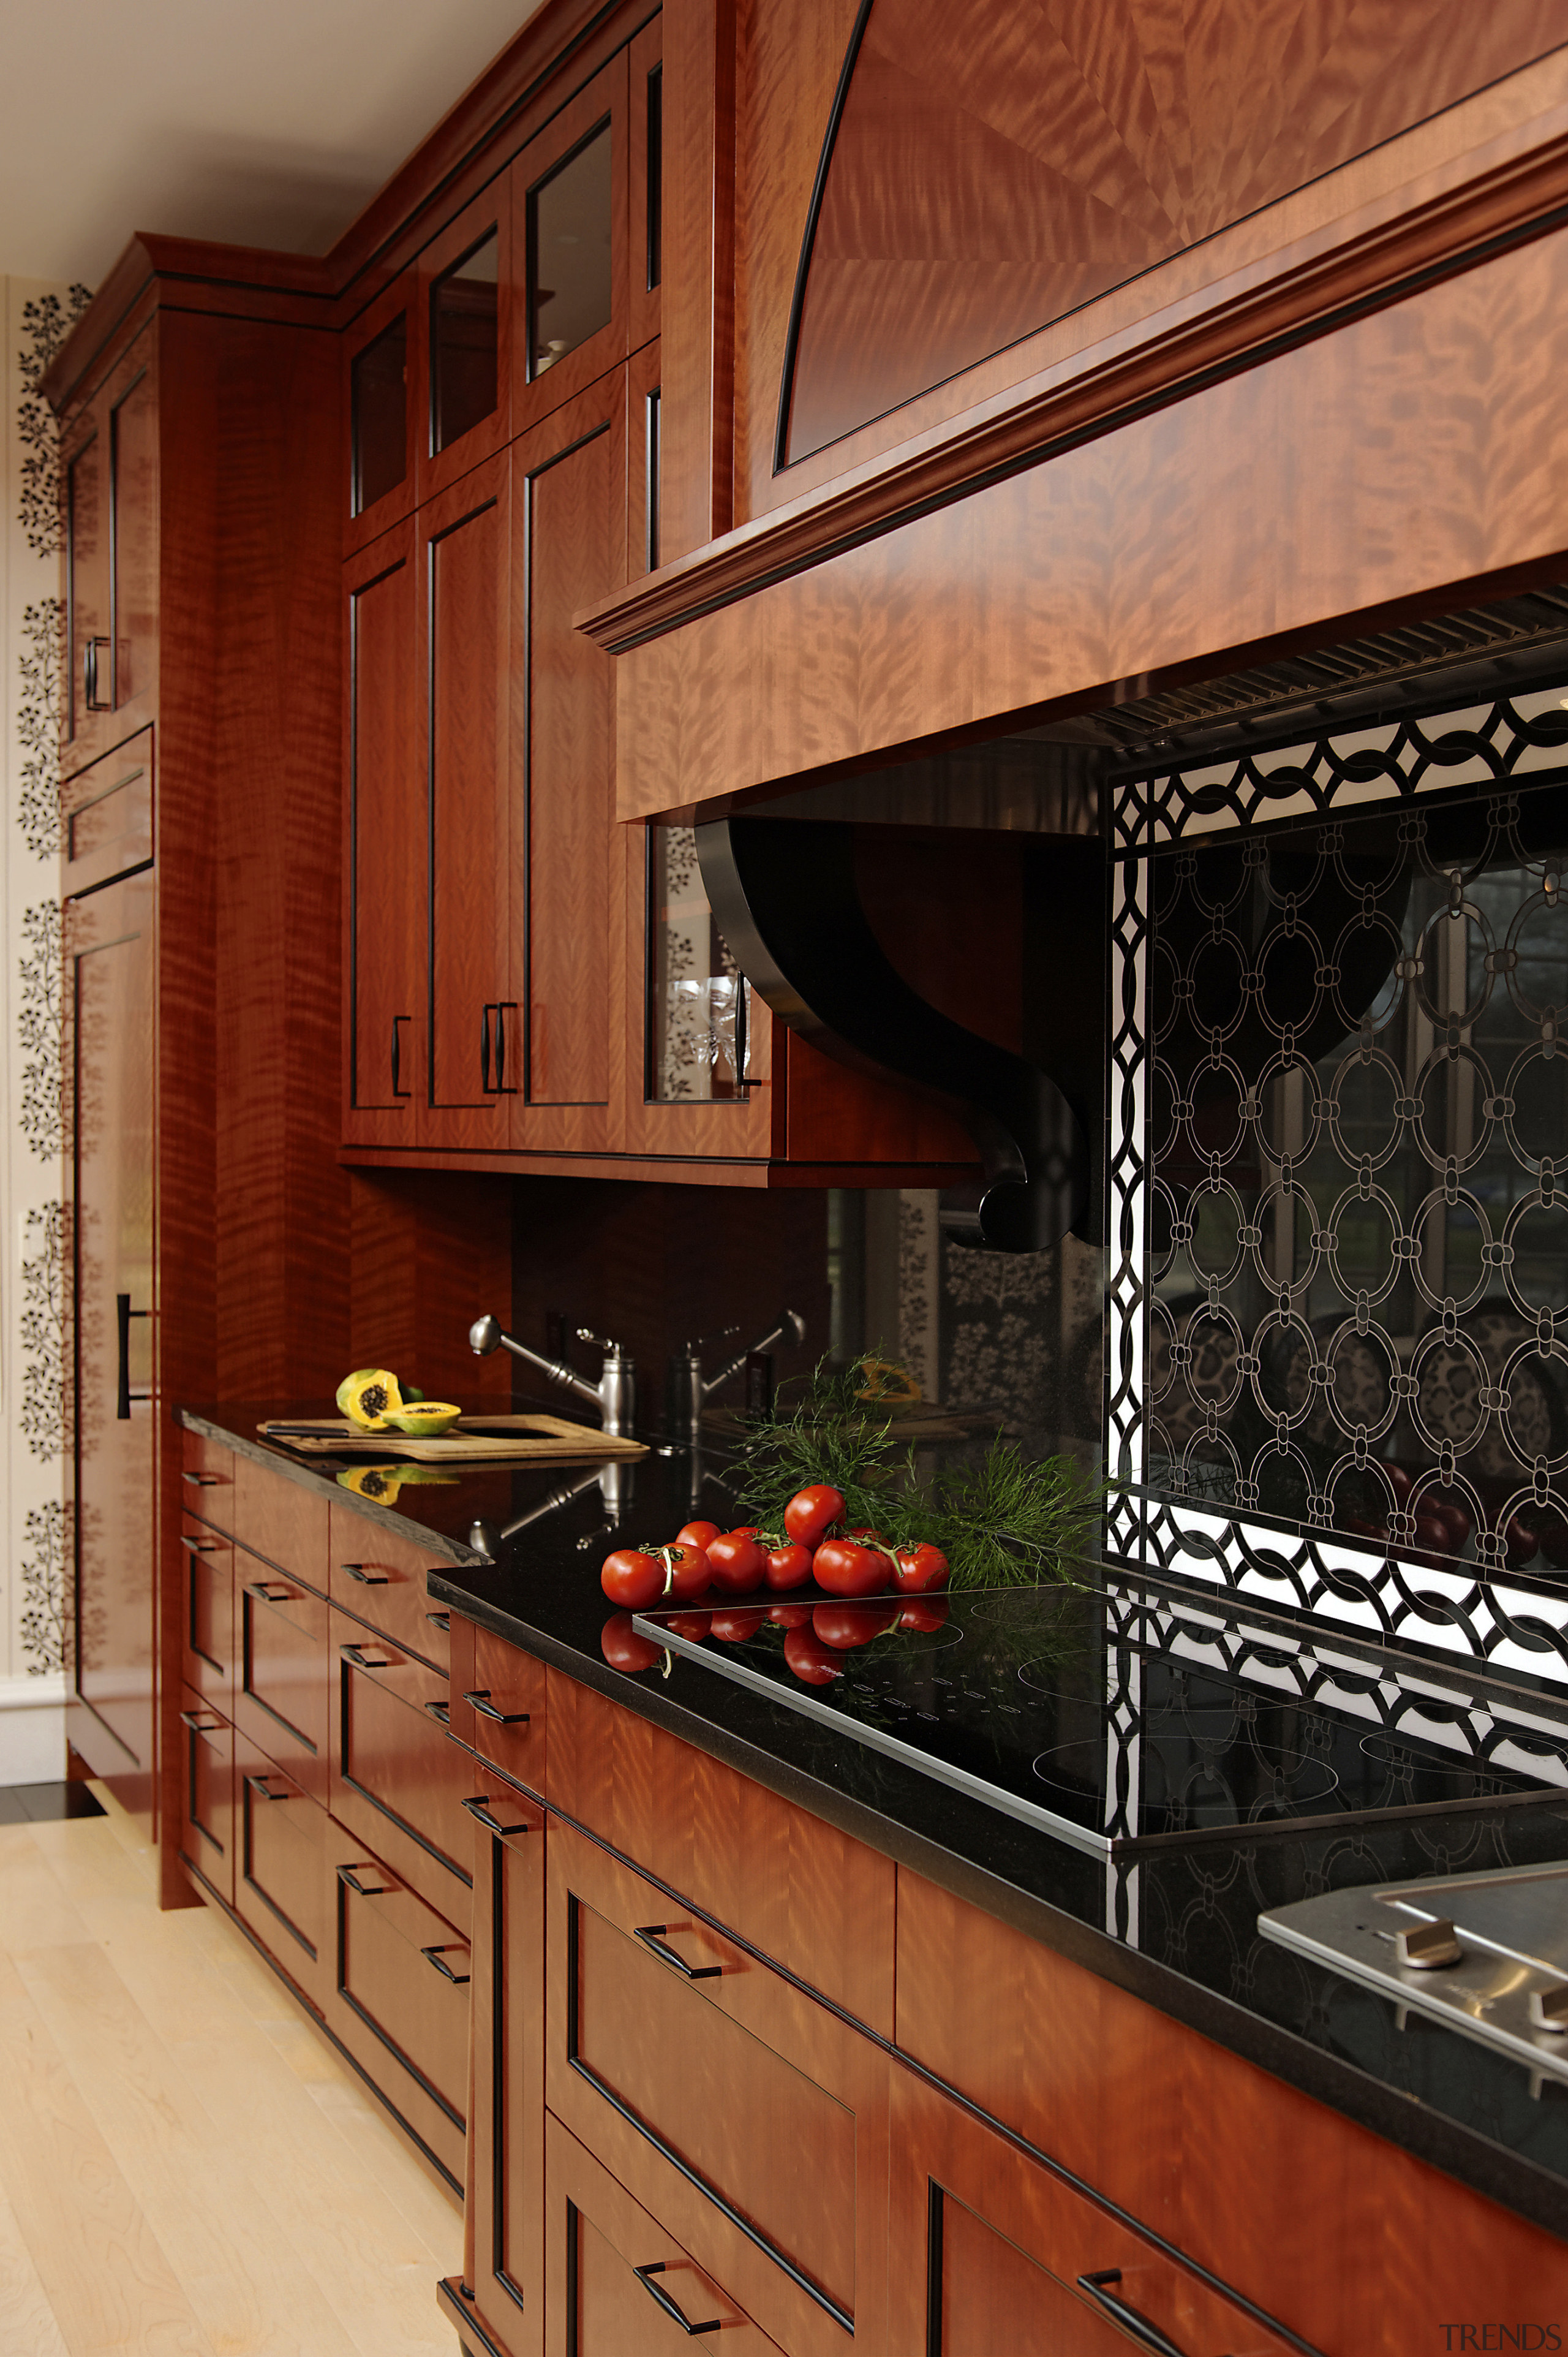 Perimeter counters in black granite complement the red cabinetry, countertop, cuisine classique, home, interior design, kitchen, room, under cabinet lighting, red